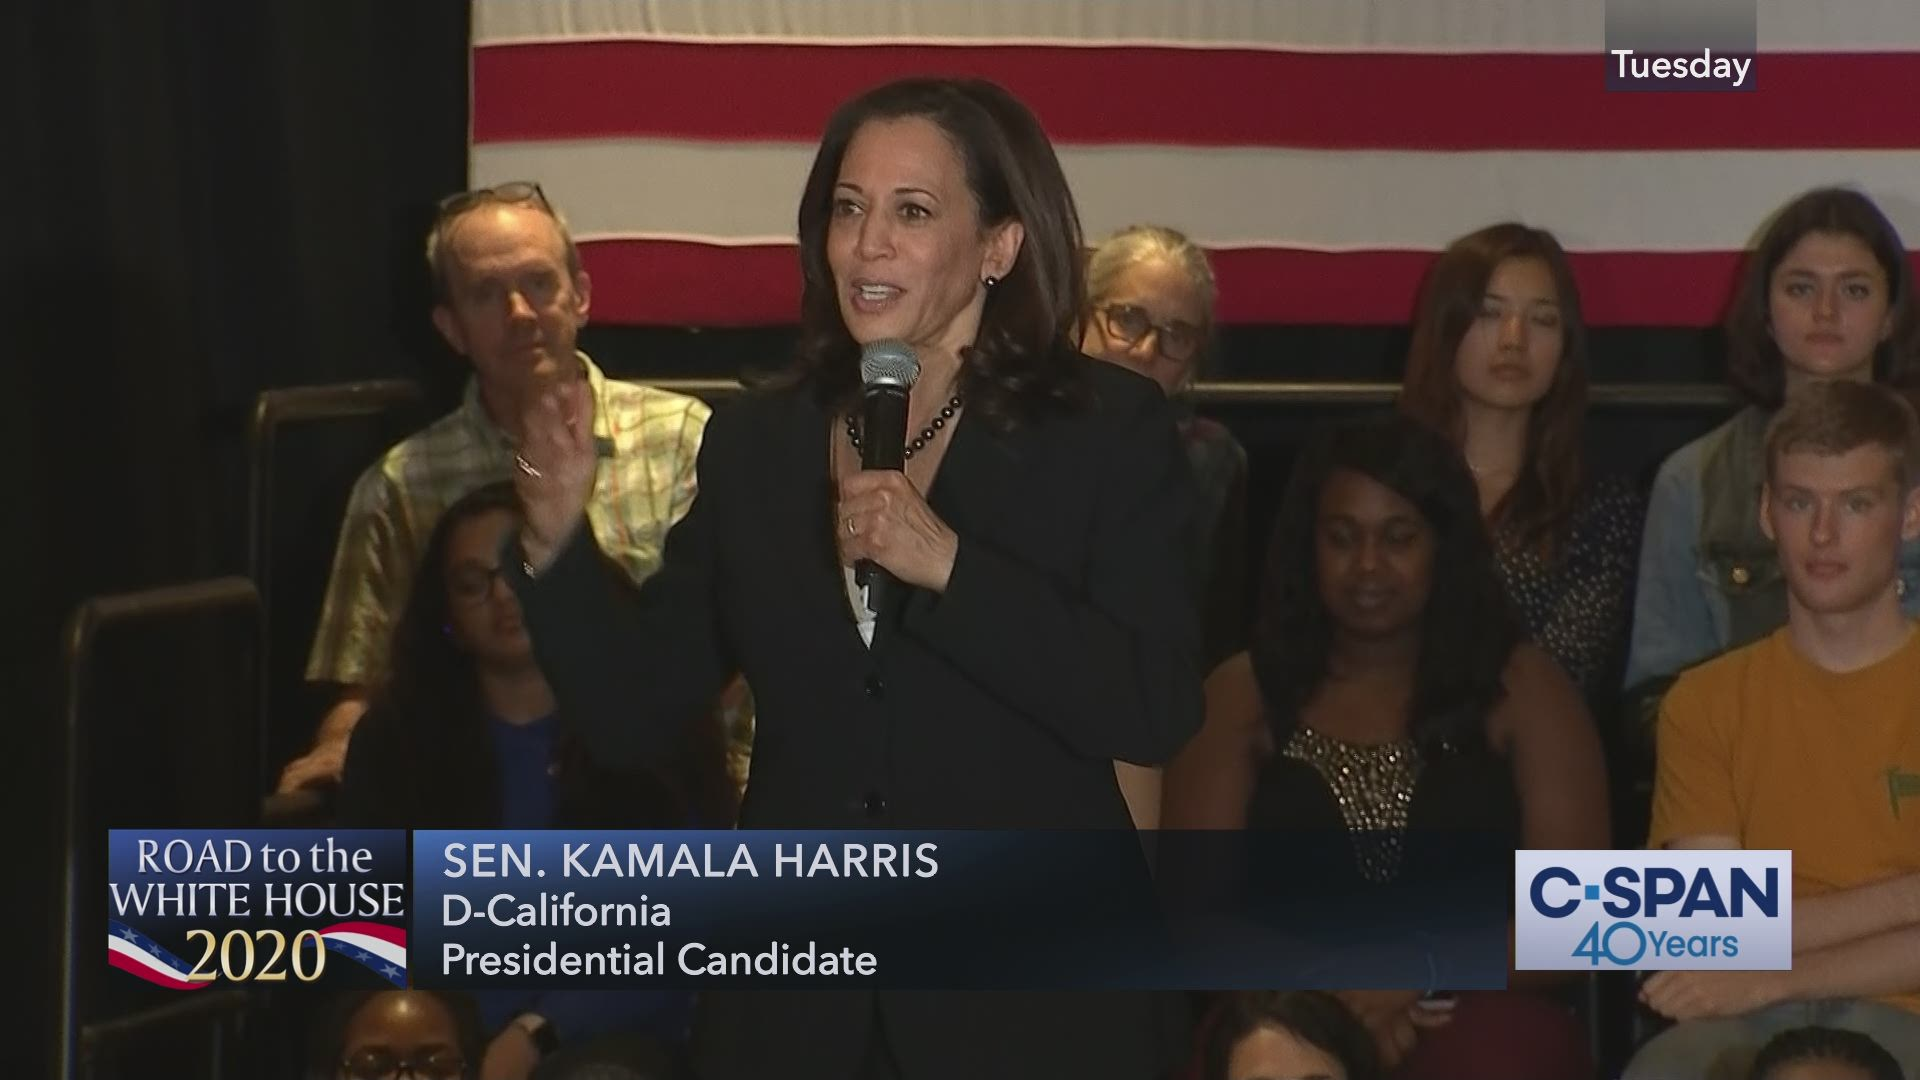 Senator Kamala Harris Town Hall in Hanover, New Hampshire